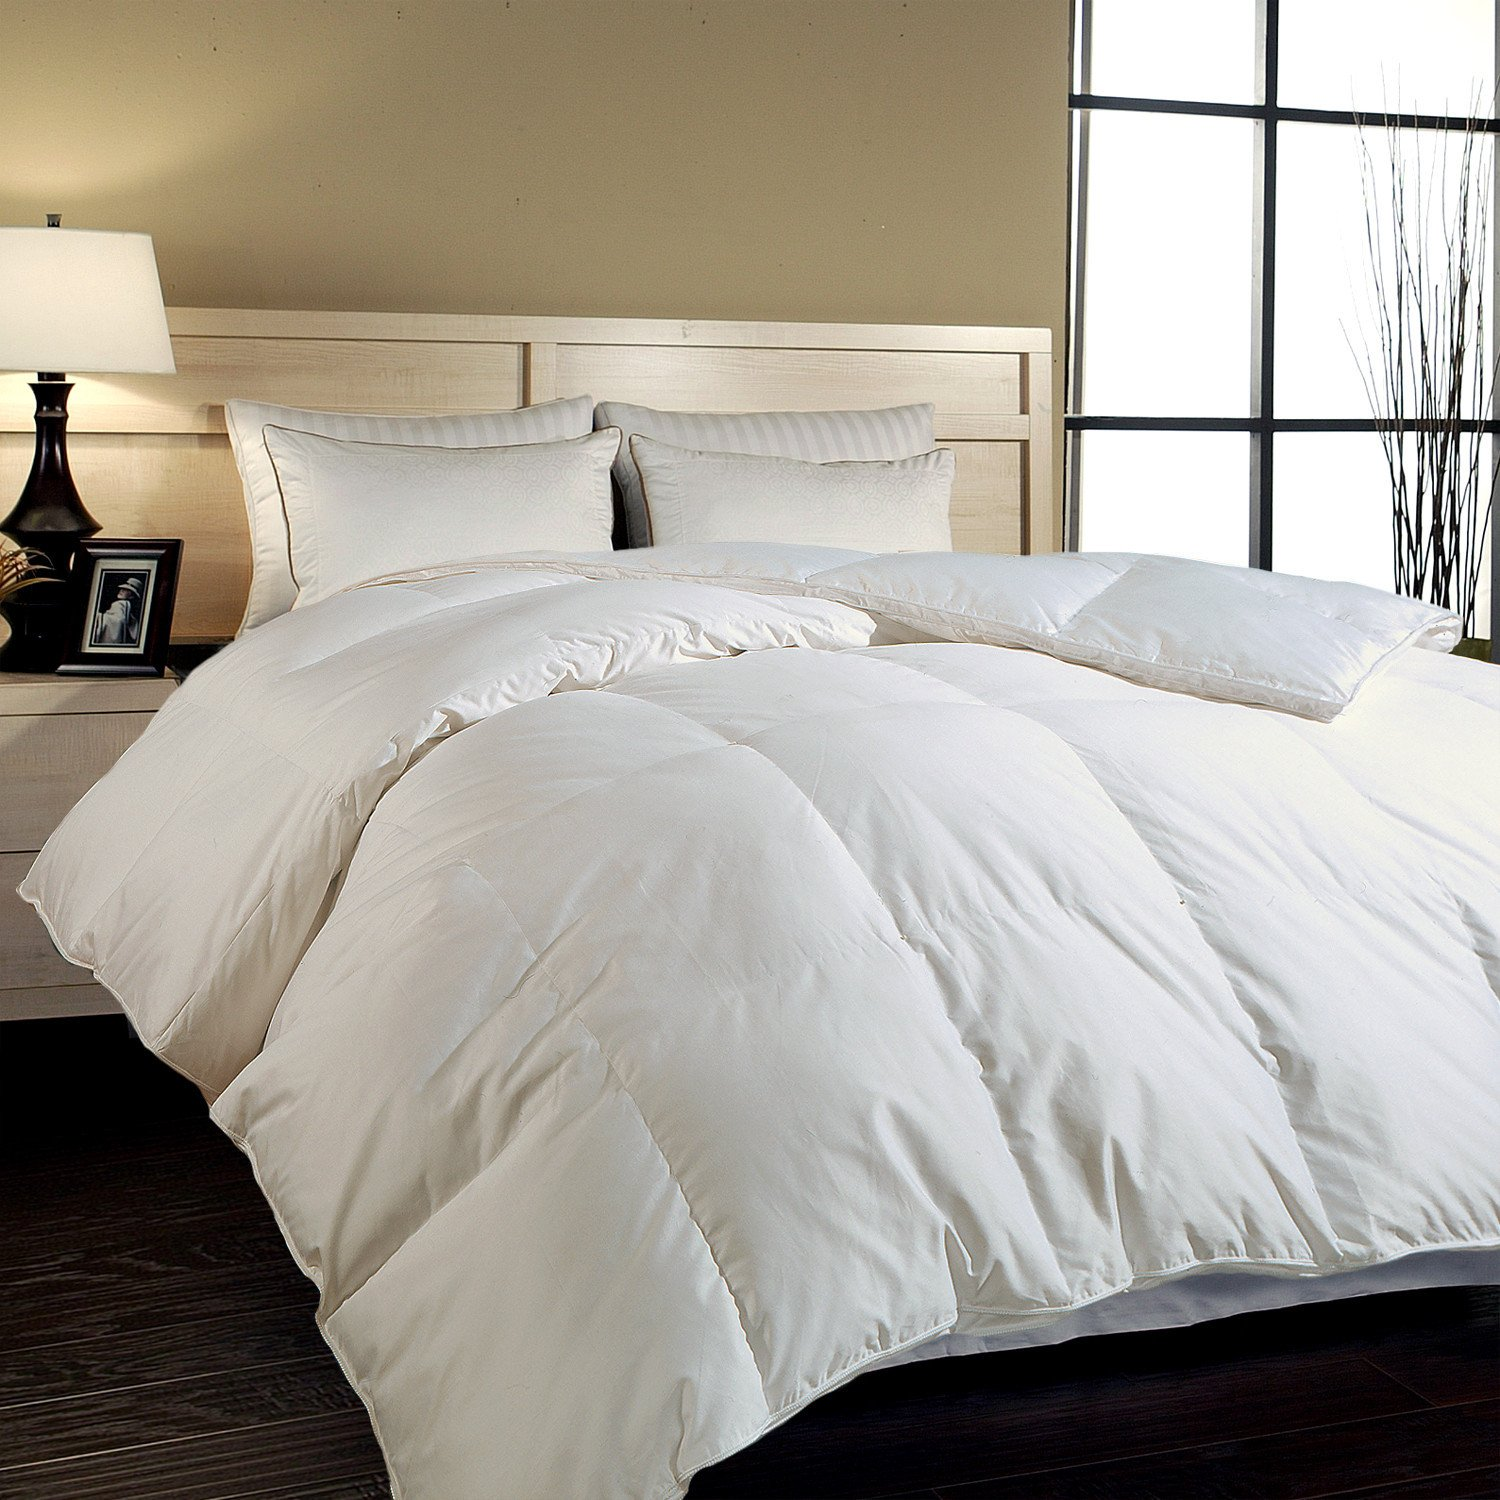 bedding overstock hotel down extra comforter warmth today free shipping count siberian white grand macys product thread oversized bath